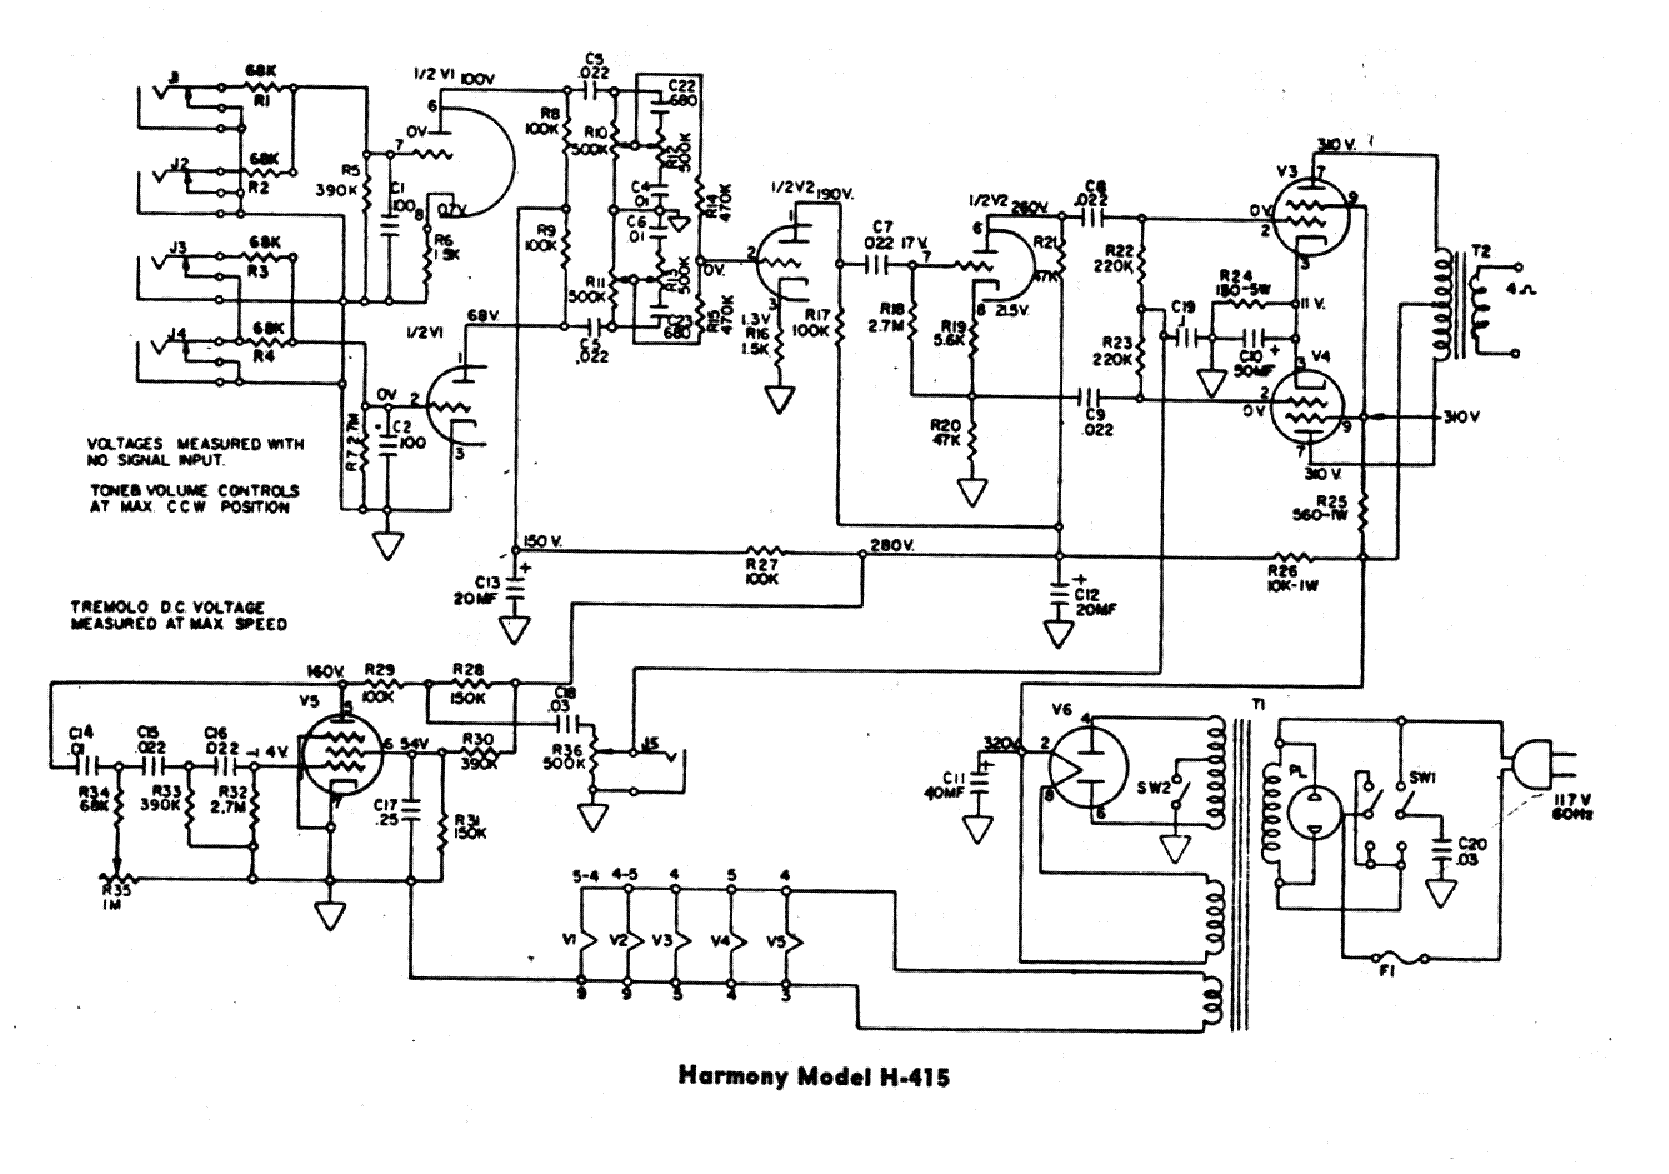 problem ? | telecaster guitar forum kustom amp schematic #2